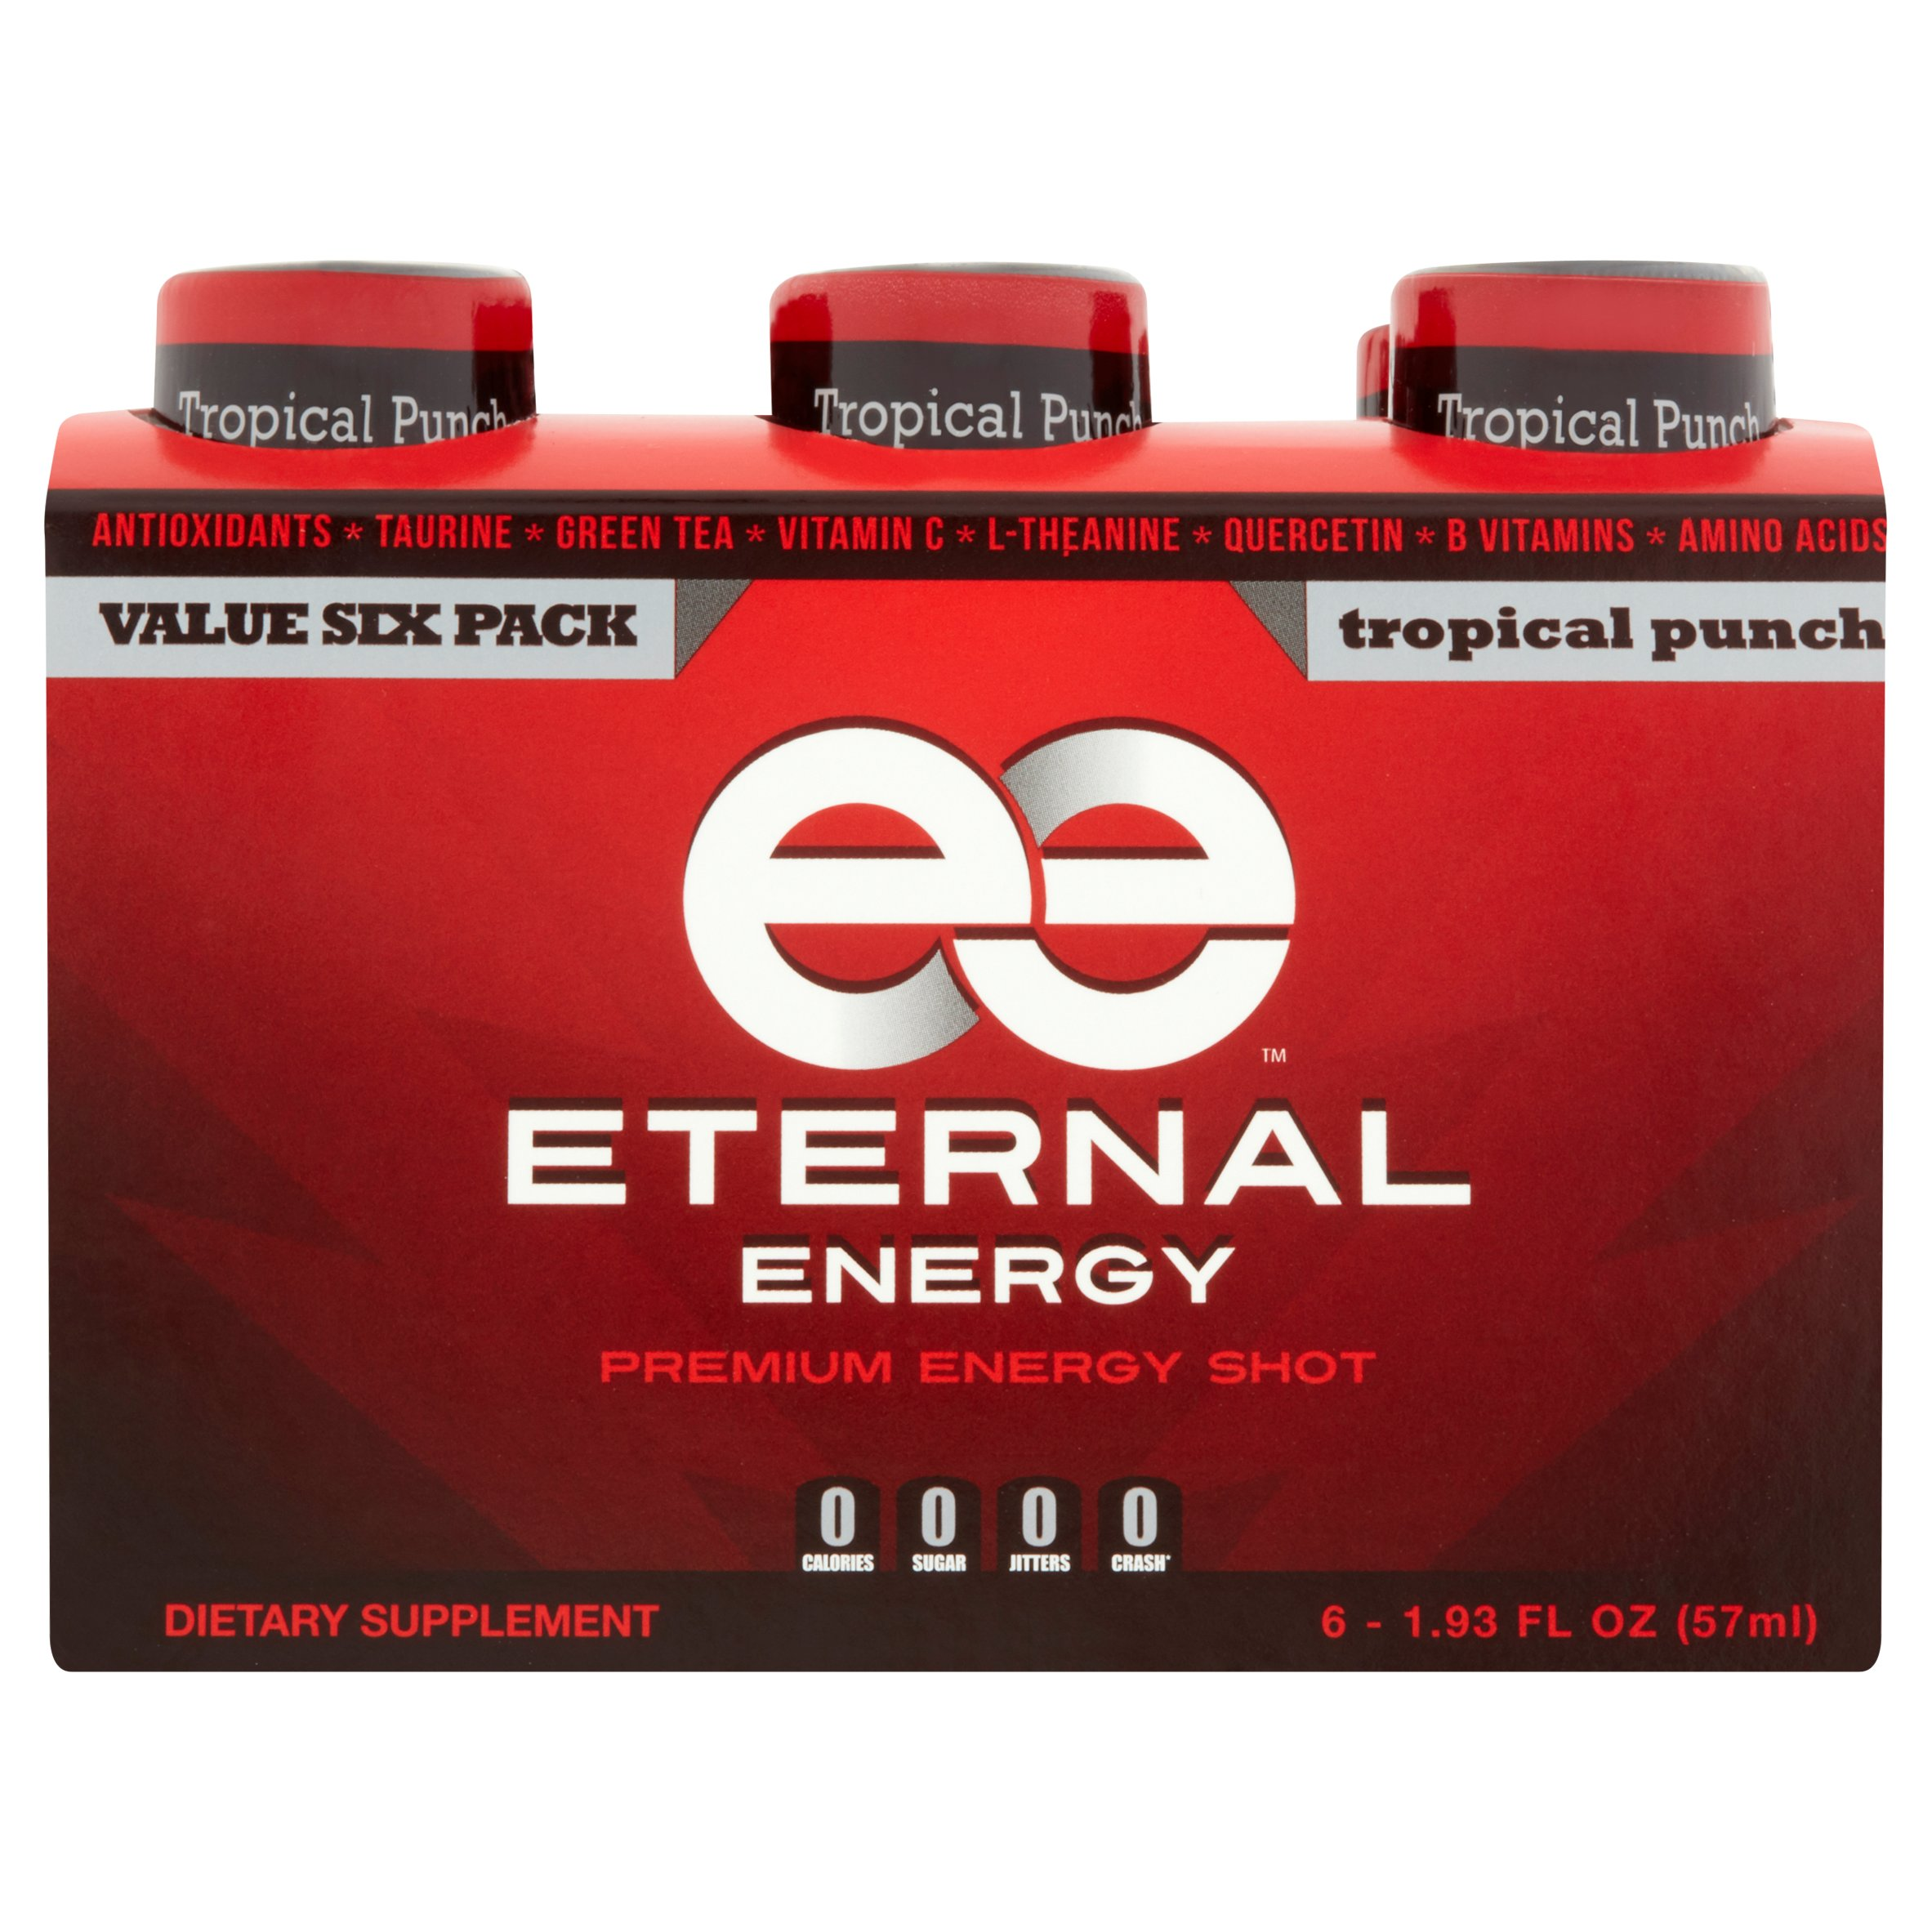 Eternal Energy Premium Energy Shot, Tropical Punch, 1.93 Fl Oz, 6 Ct